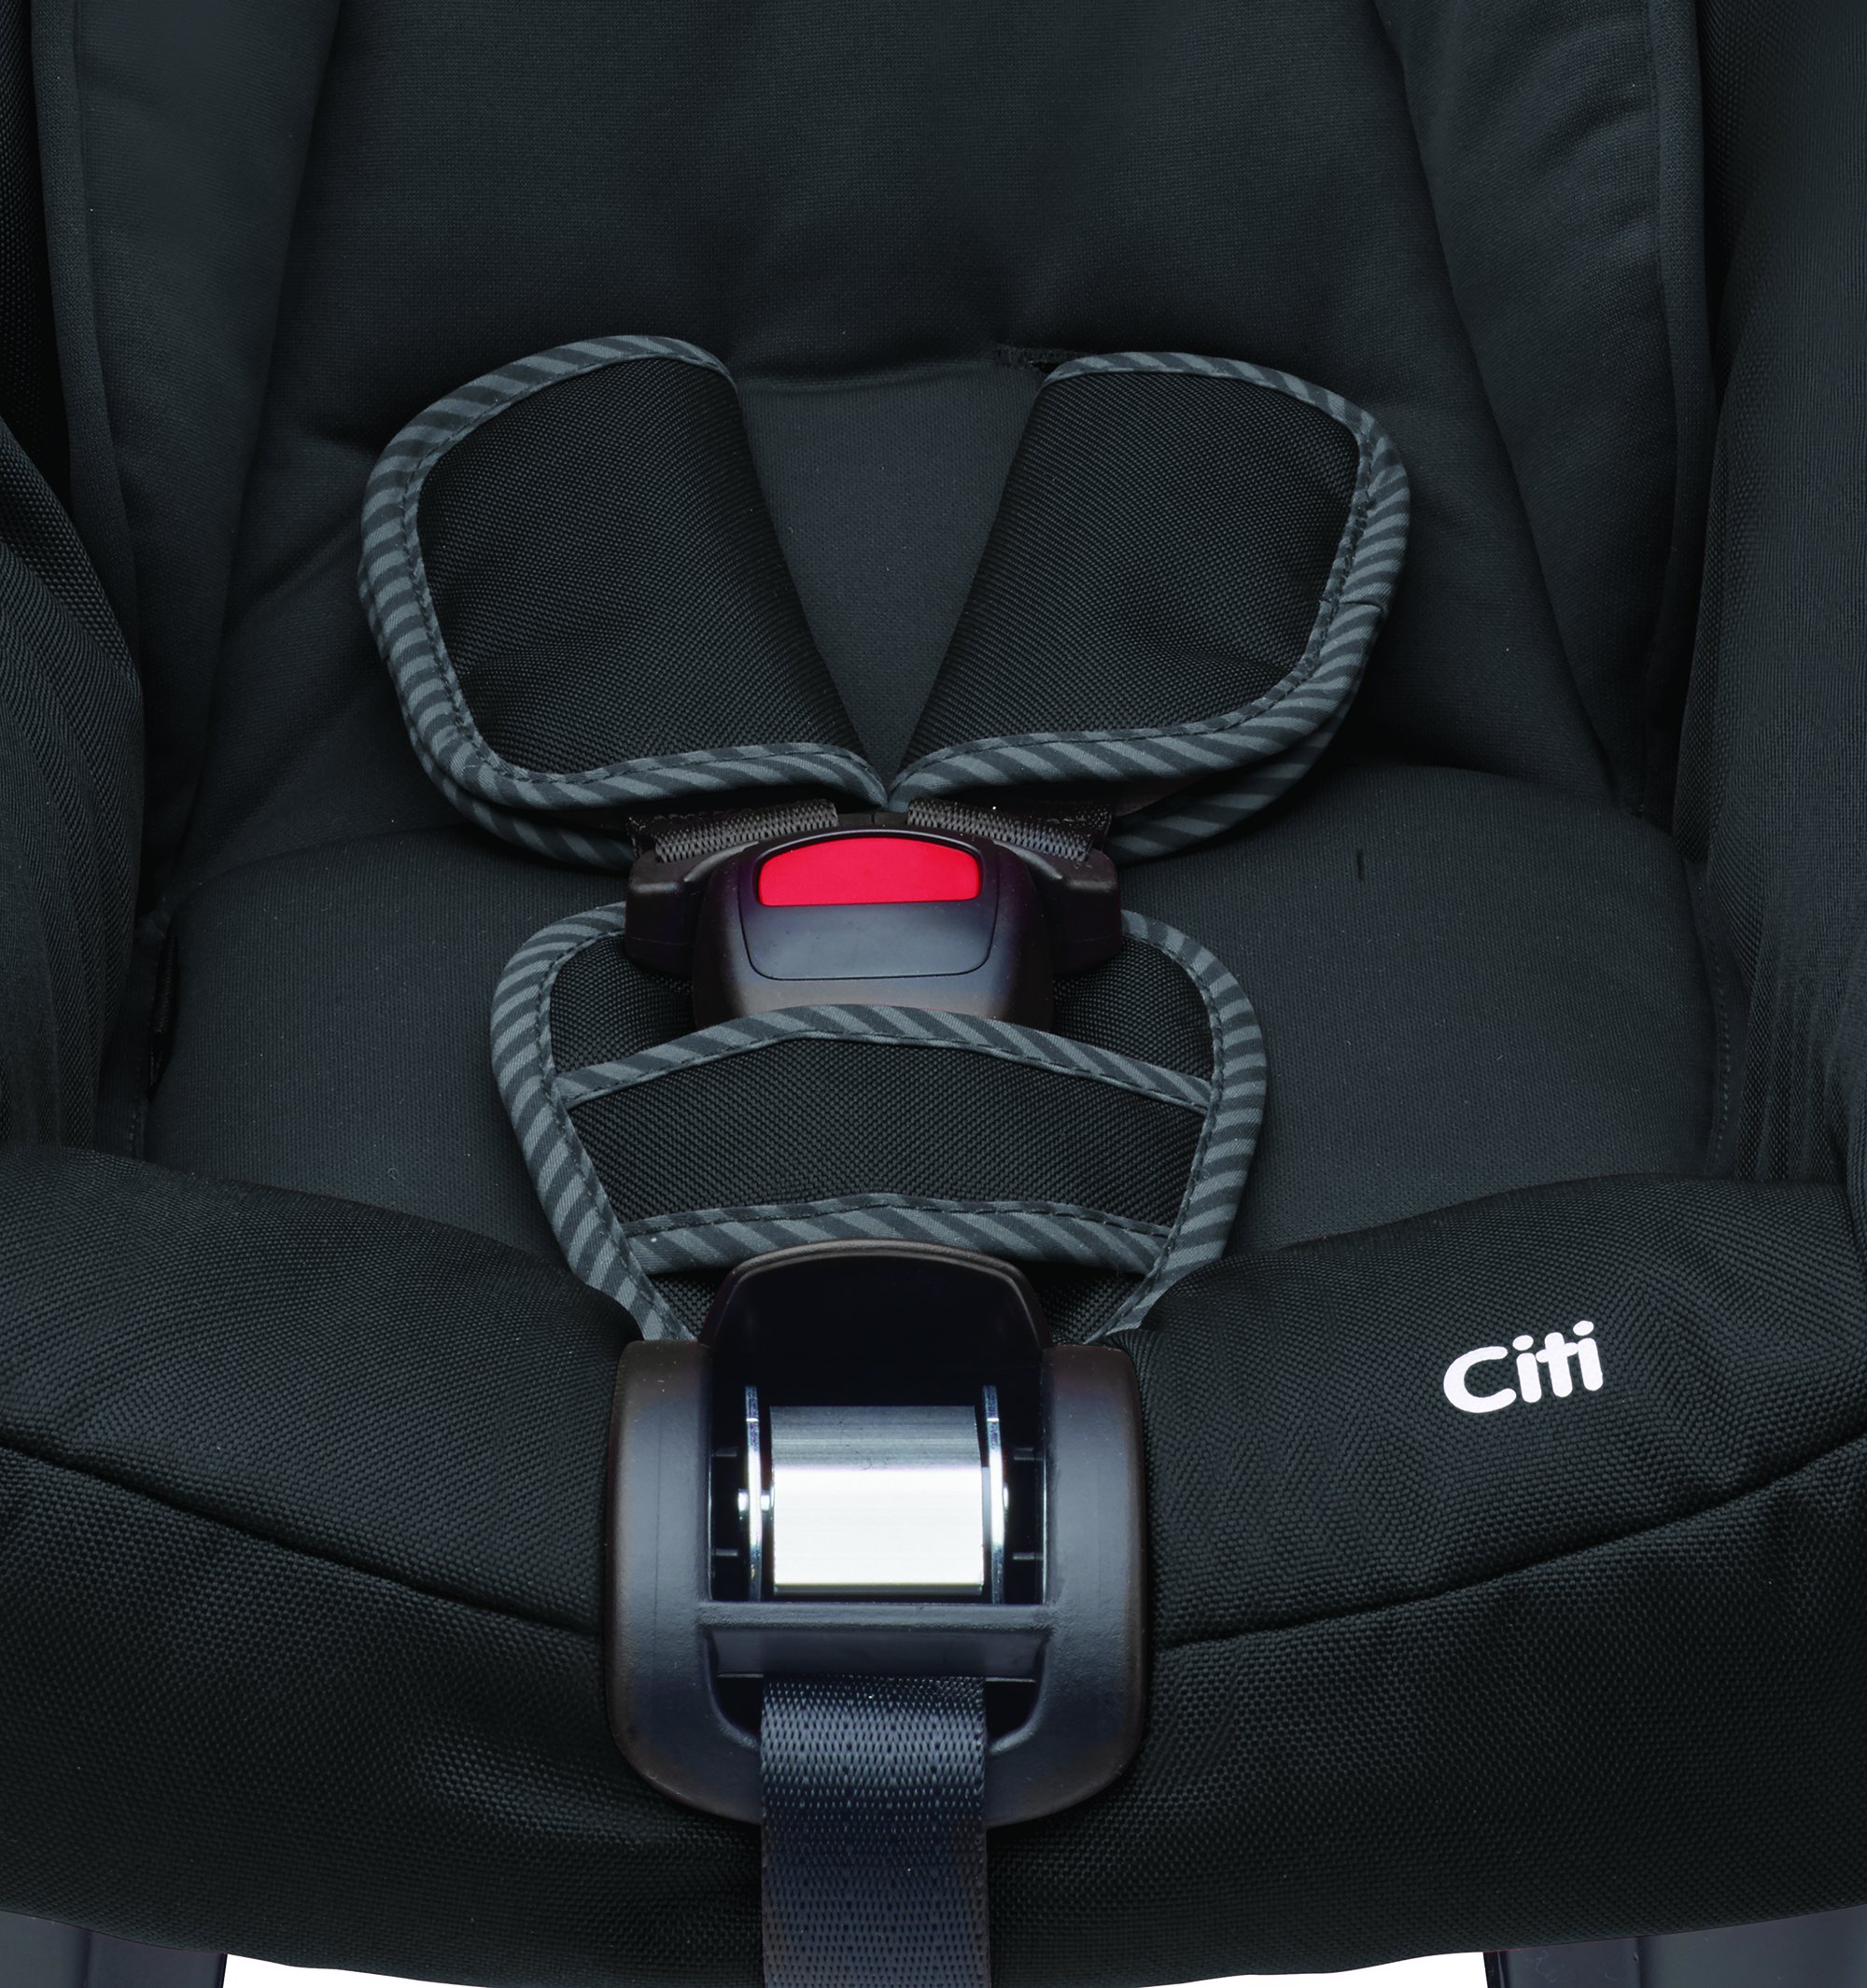 Maxi-Cosi Kinderautositz Citi Black Raven Maxi-Cosi Side protection system, guarantees optimal protection in the event of a side impact Lightweight, light weight and ergonomically shaped safety bar for use as carrying handle Practical travel system 8